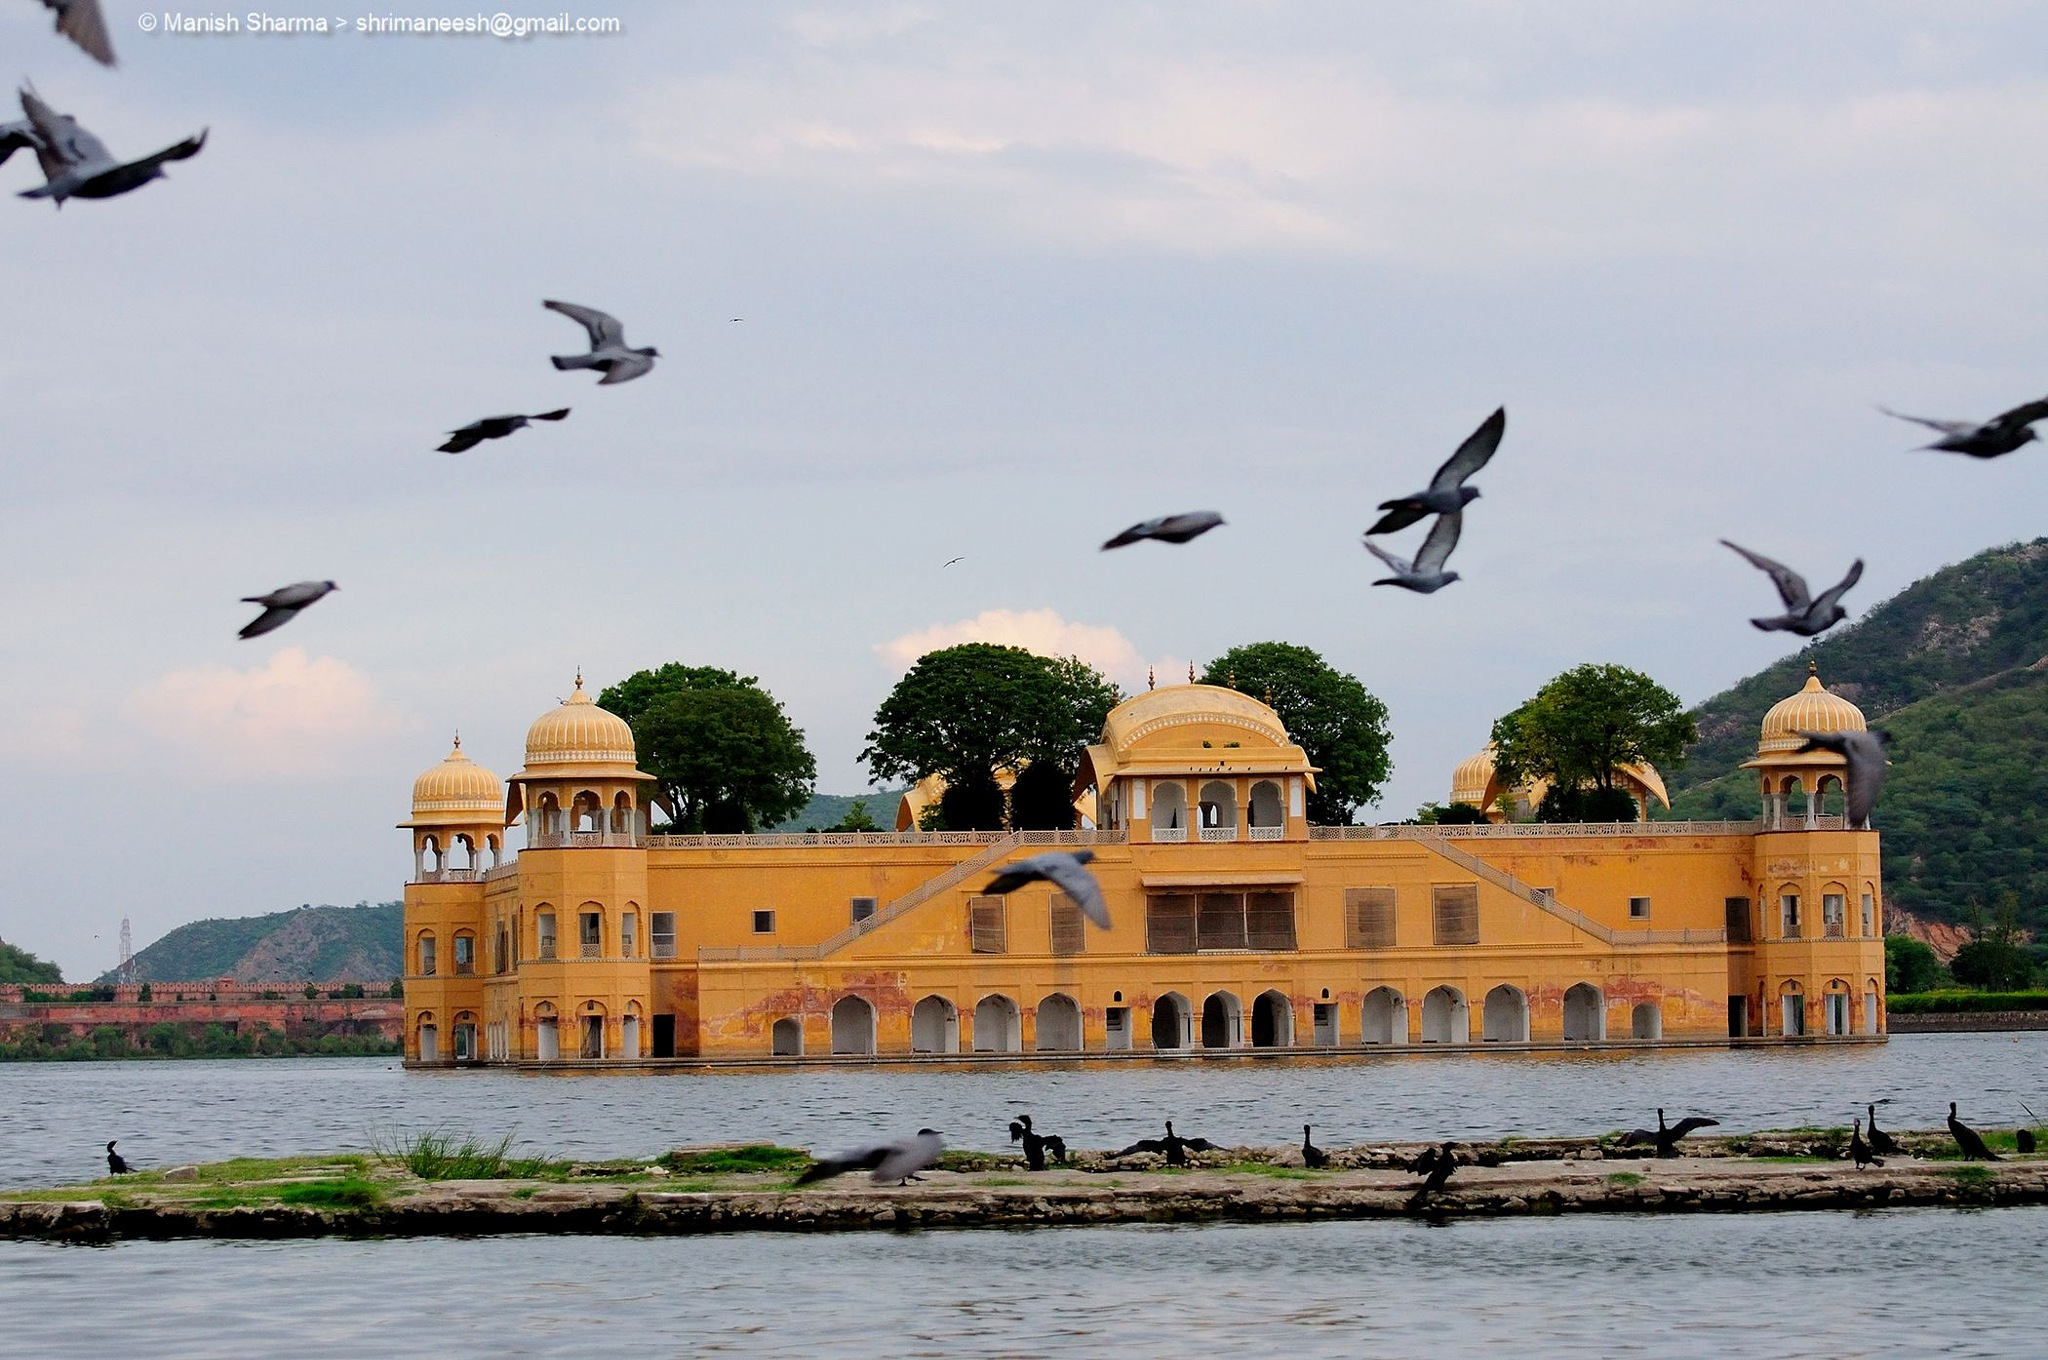 JAL MAHAL the JEWEL of Jaipur. India by Maneesh Sharma